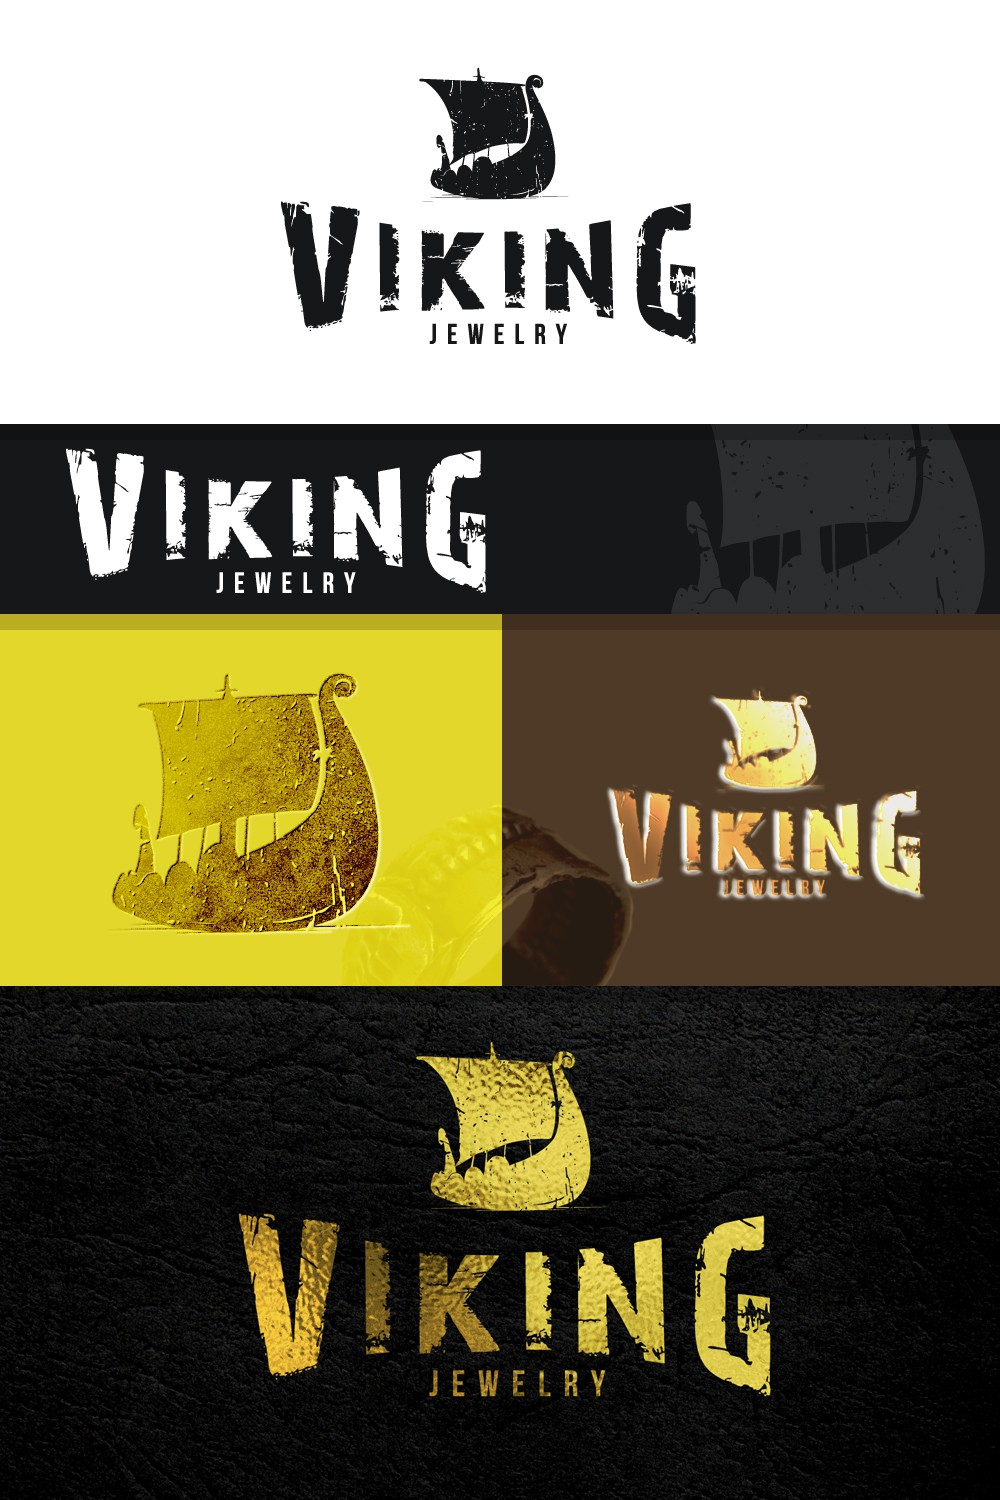 Create a logo for a high quality manly  viking jewelry company.